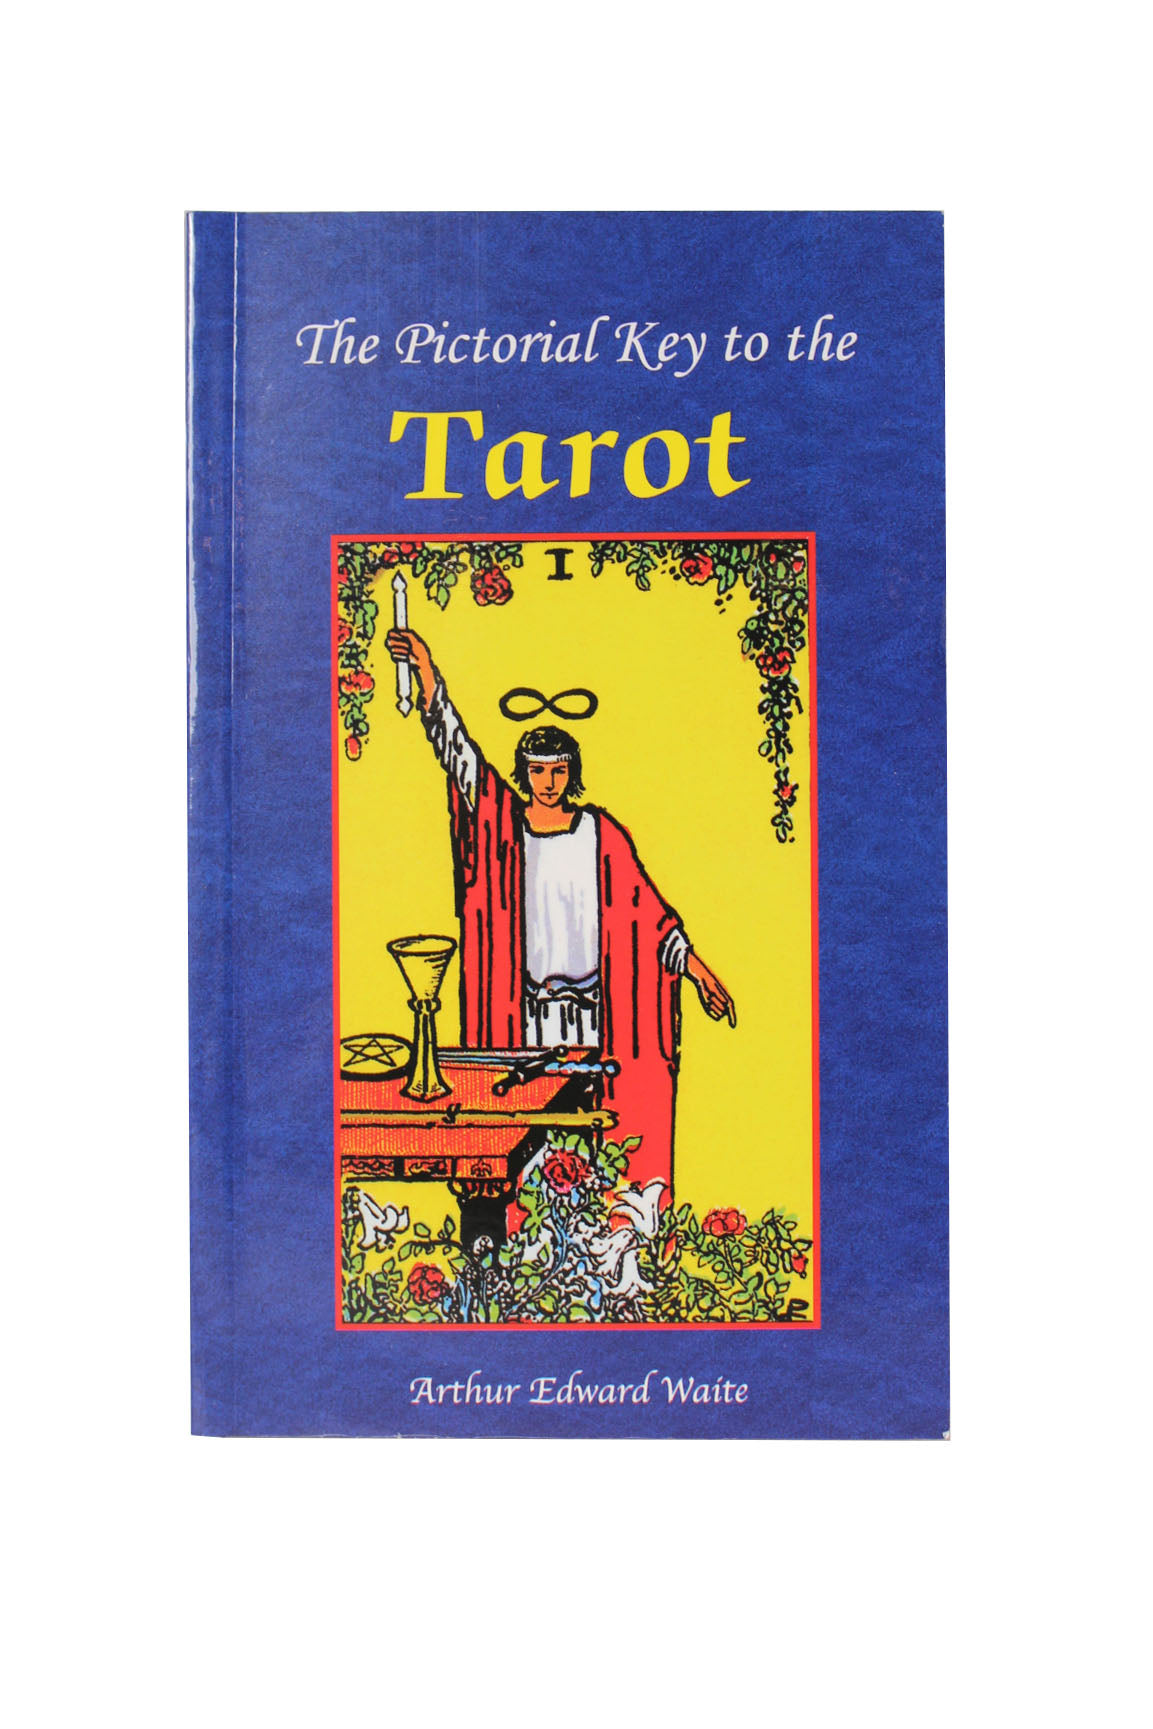 the pictorial key to the tarot book by arthur edward waite.